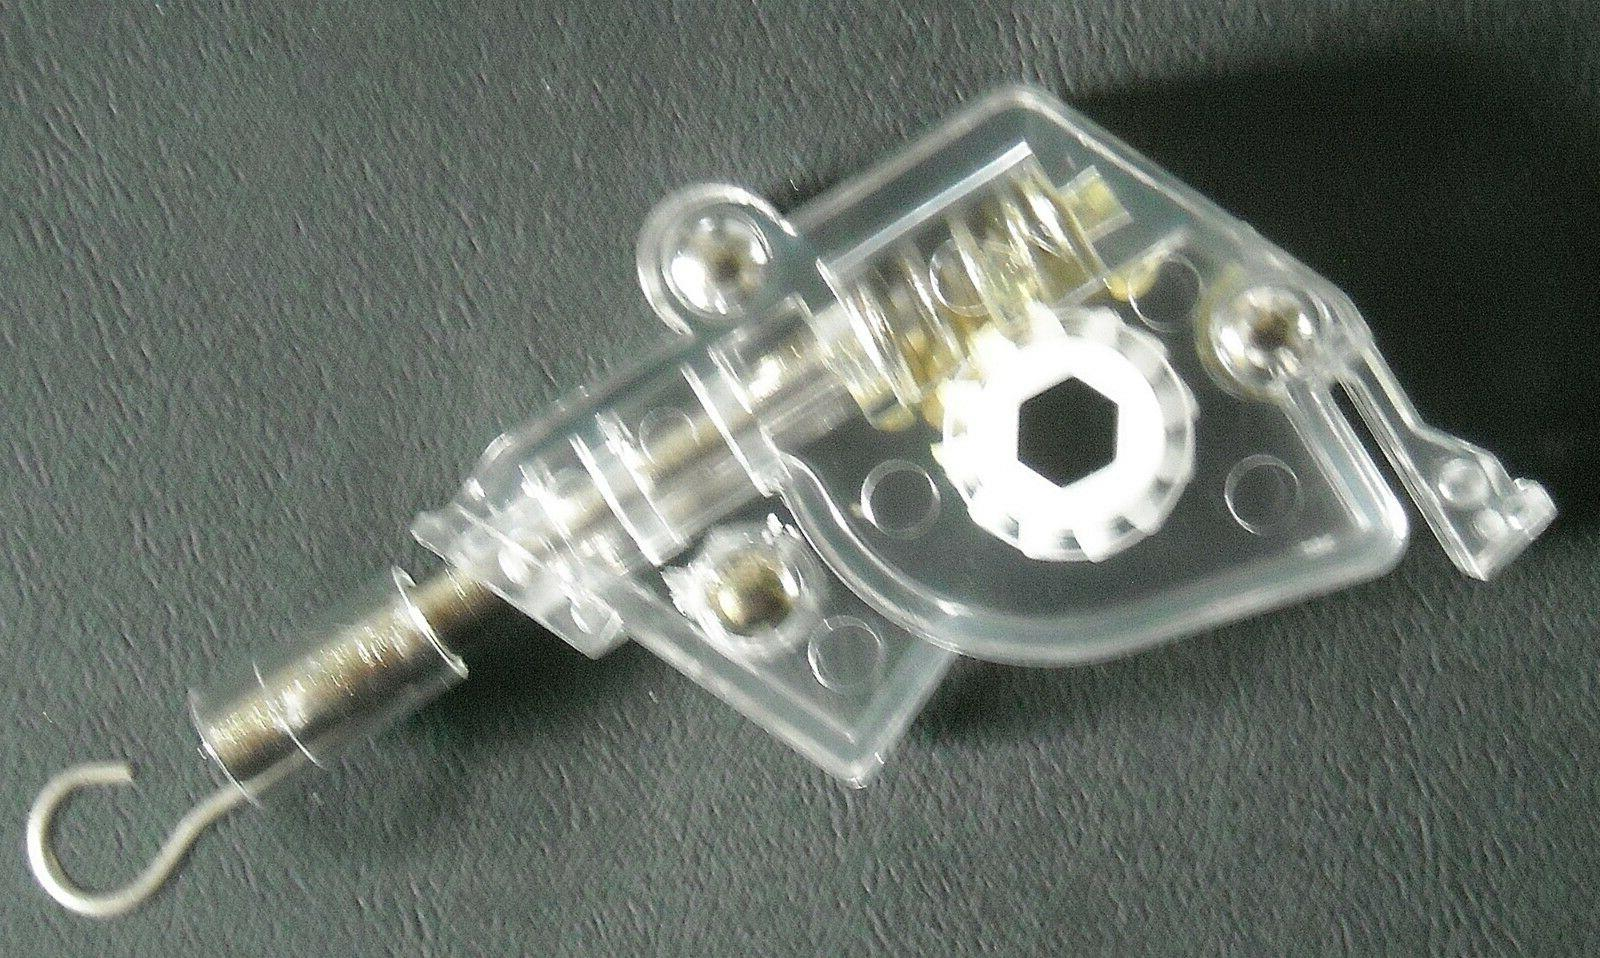 blind parts wand tilter qty 1 new